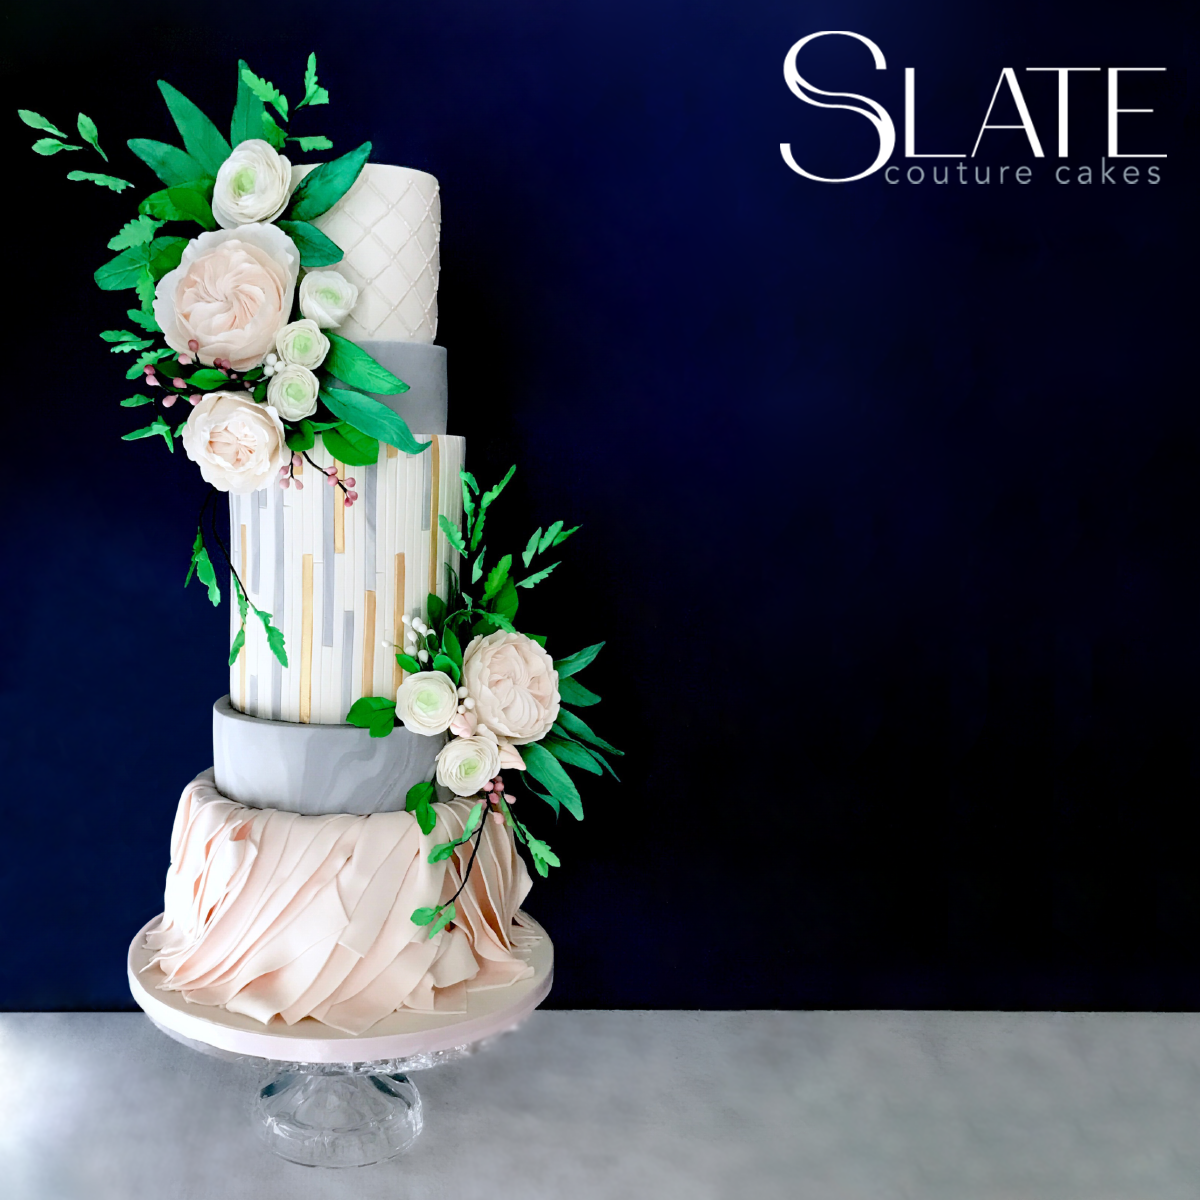 Gray and white wedding cake with sugar flowers;